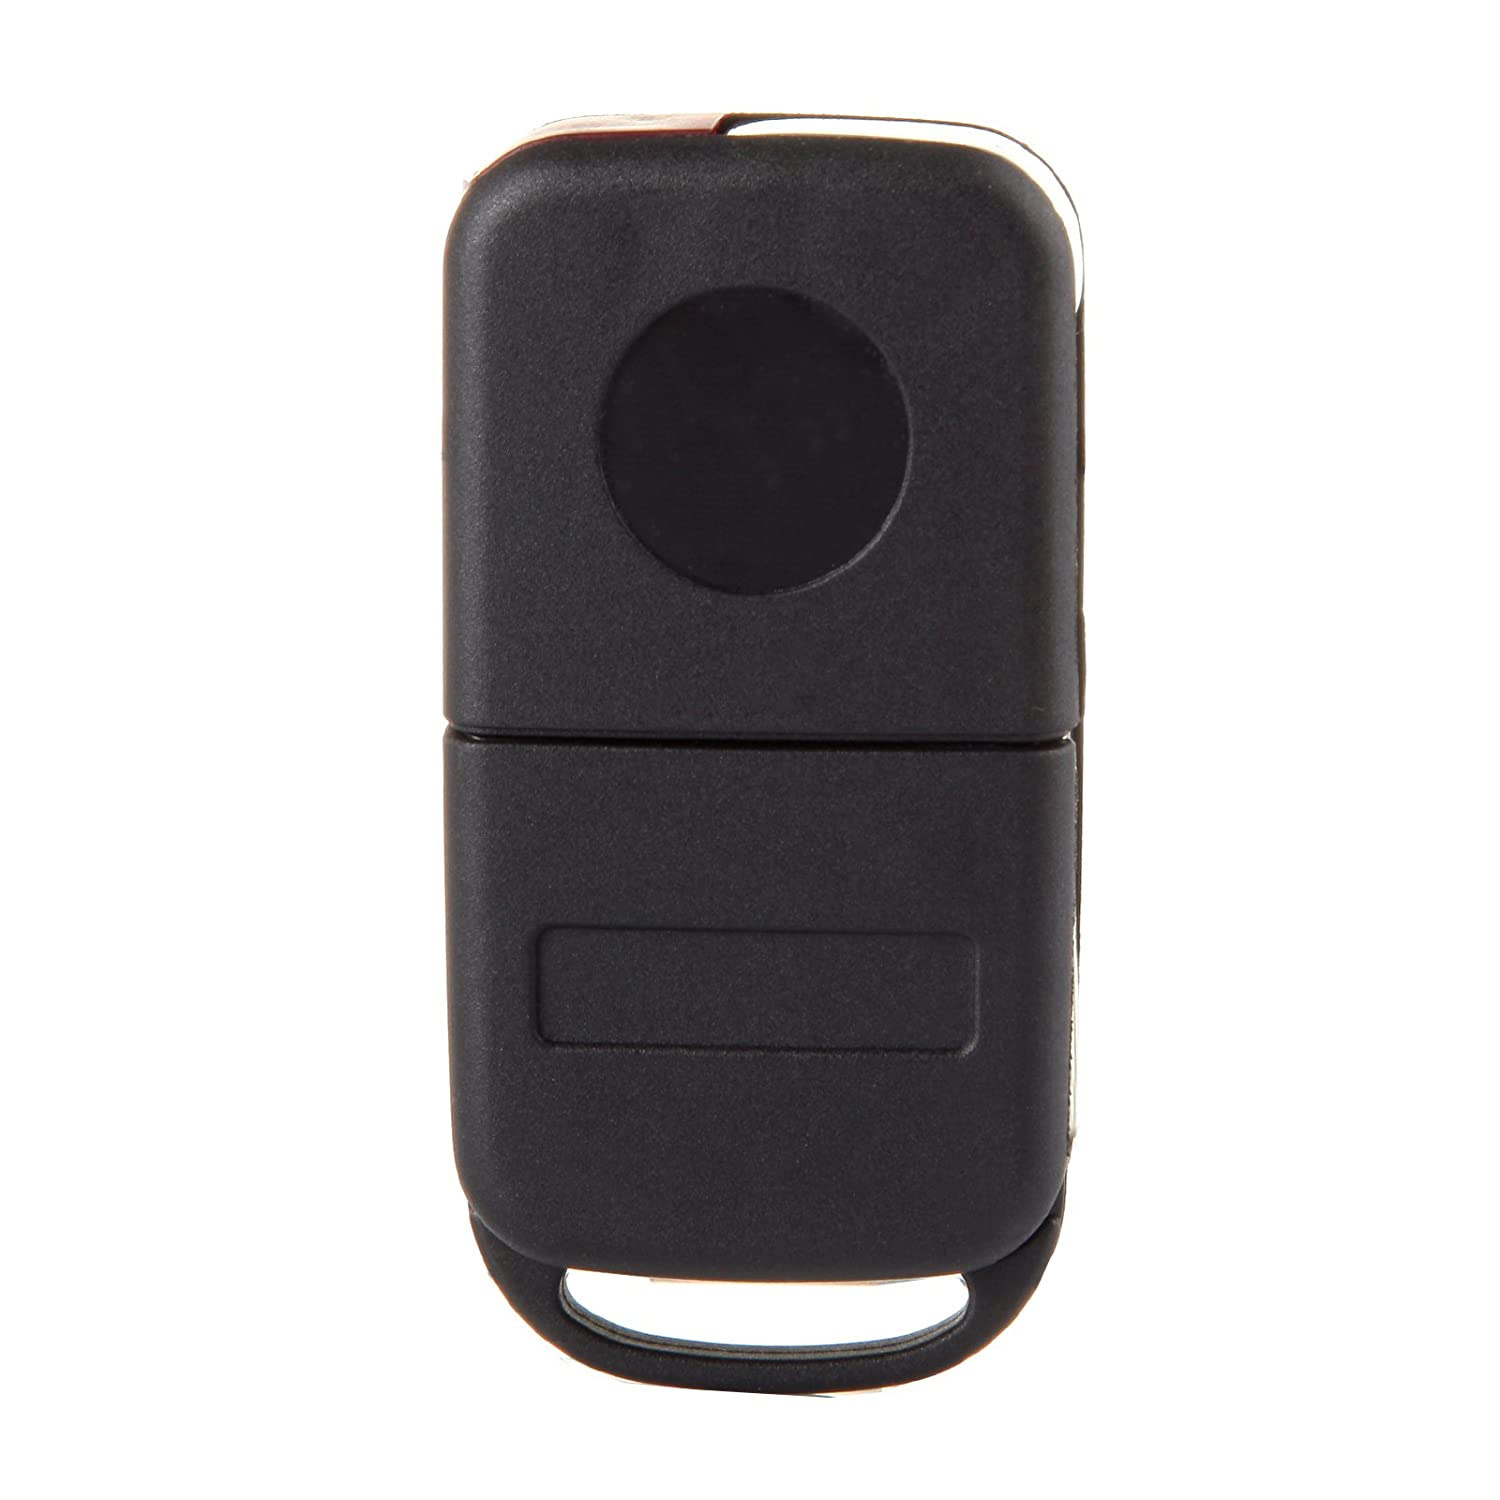 cciyu 1PC Uncut 3 Buttons Keyless Entry Remote Fob Case Replacement fit for 94-2005 Mercedes-Benz AMG ML430 S500 SL500 SL600 SLK32 SLK230 NCZMB1K